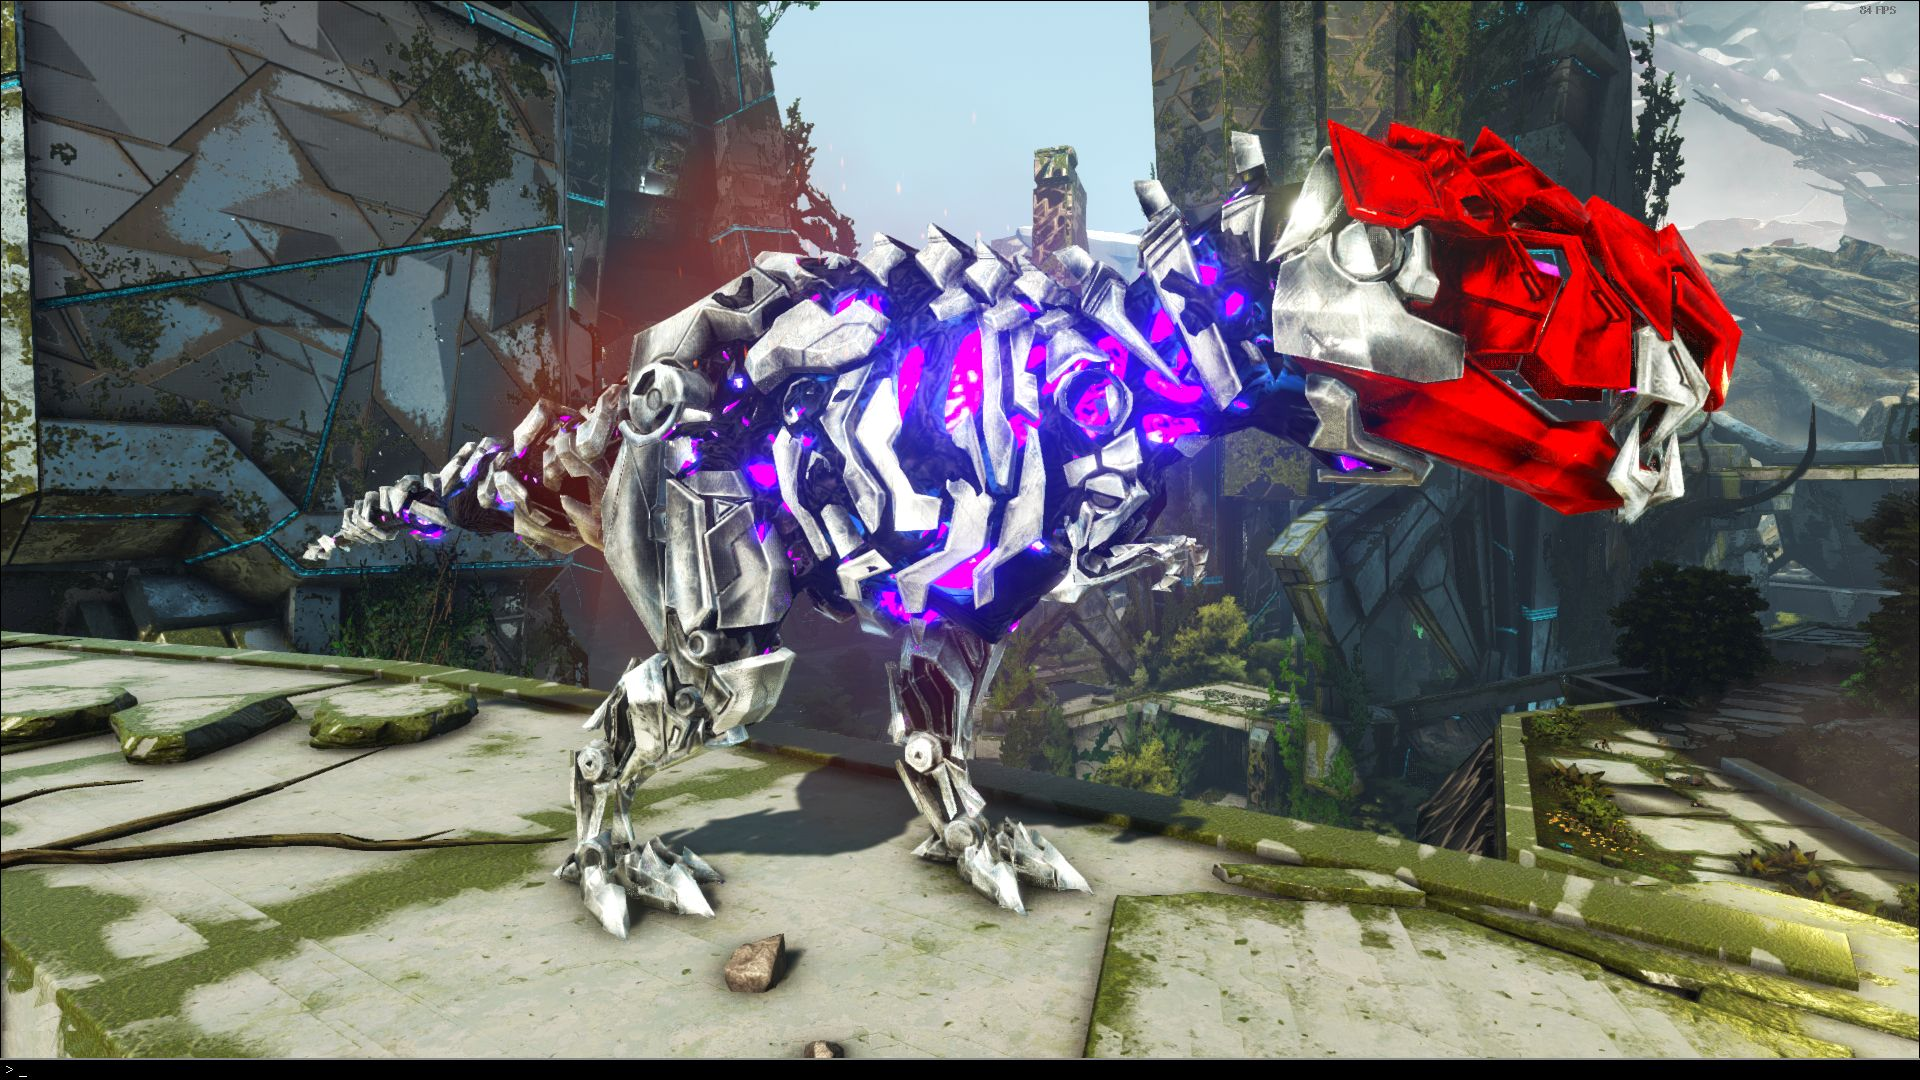 Enraged Corrupted Rex Official Ark Survival Evolved Wiki They can also drop as rare loot when catching fish with a fishing rod. enraged corrupted rex official ark